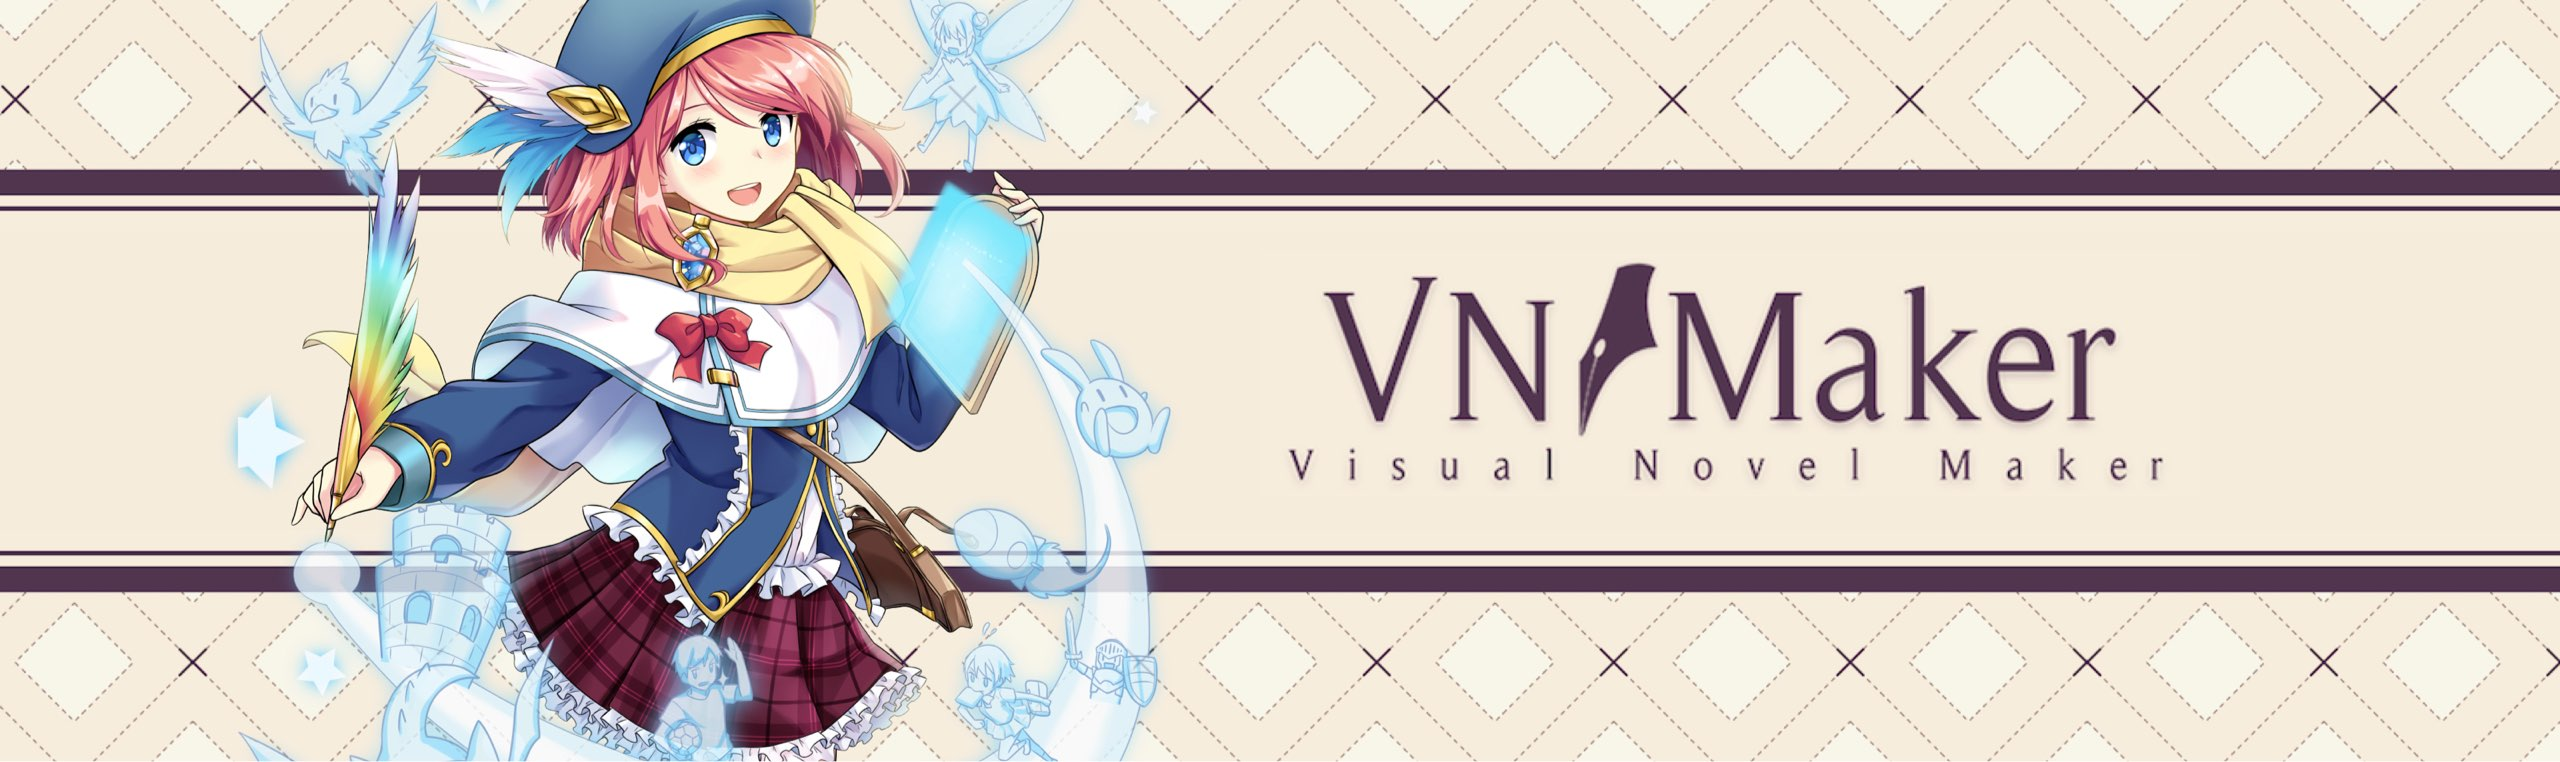 banner-visual-novel-maker